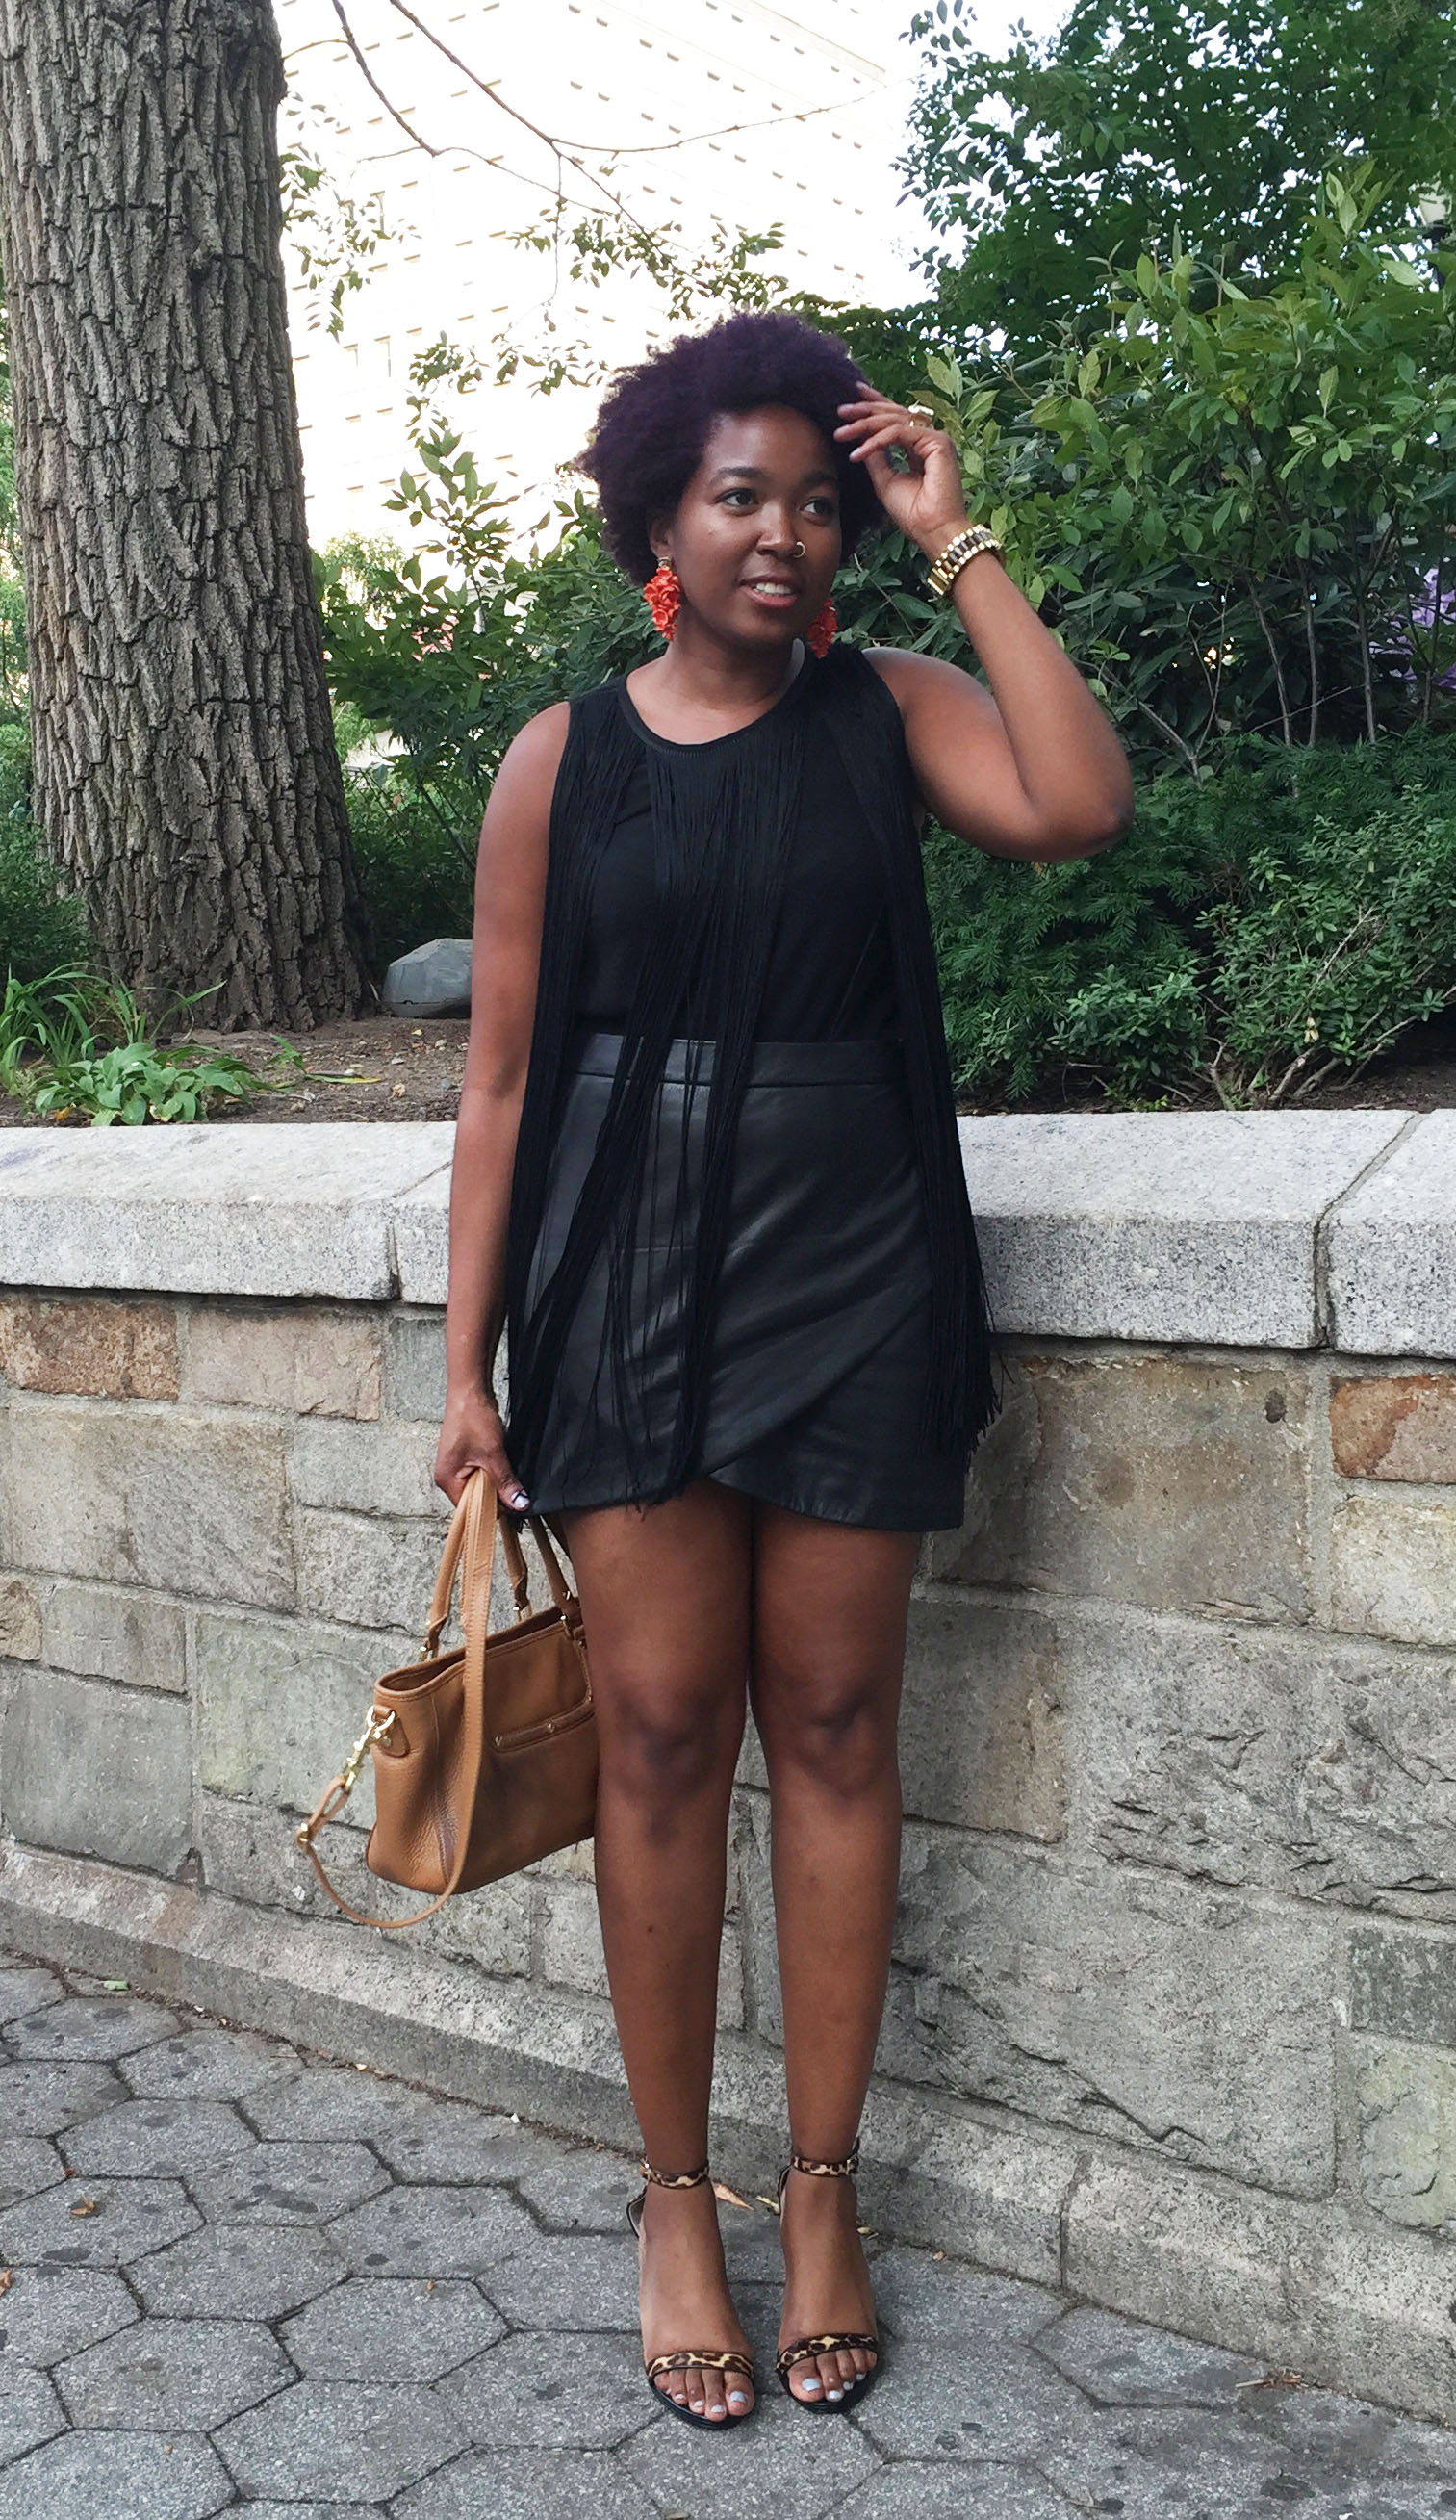 black girls killing it, outfit of the day.